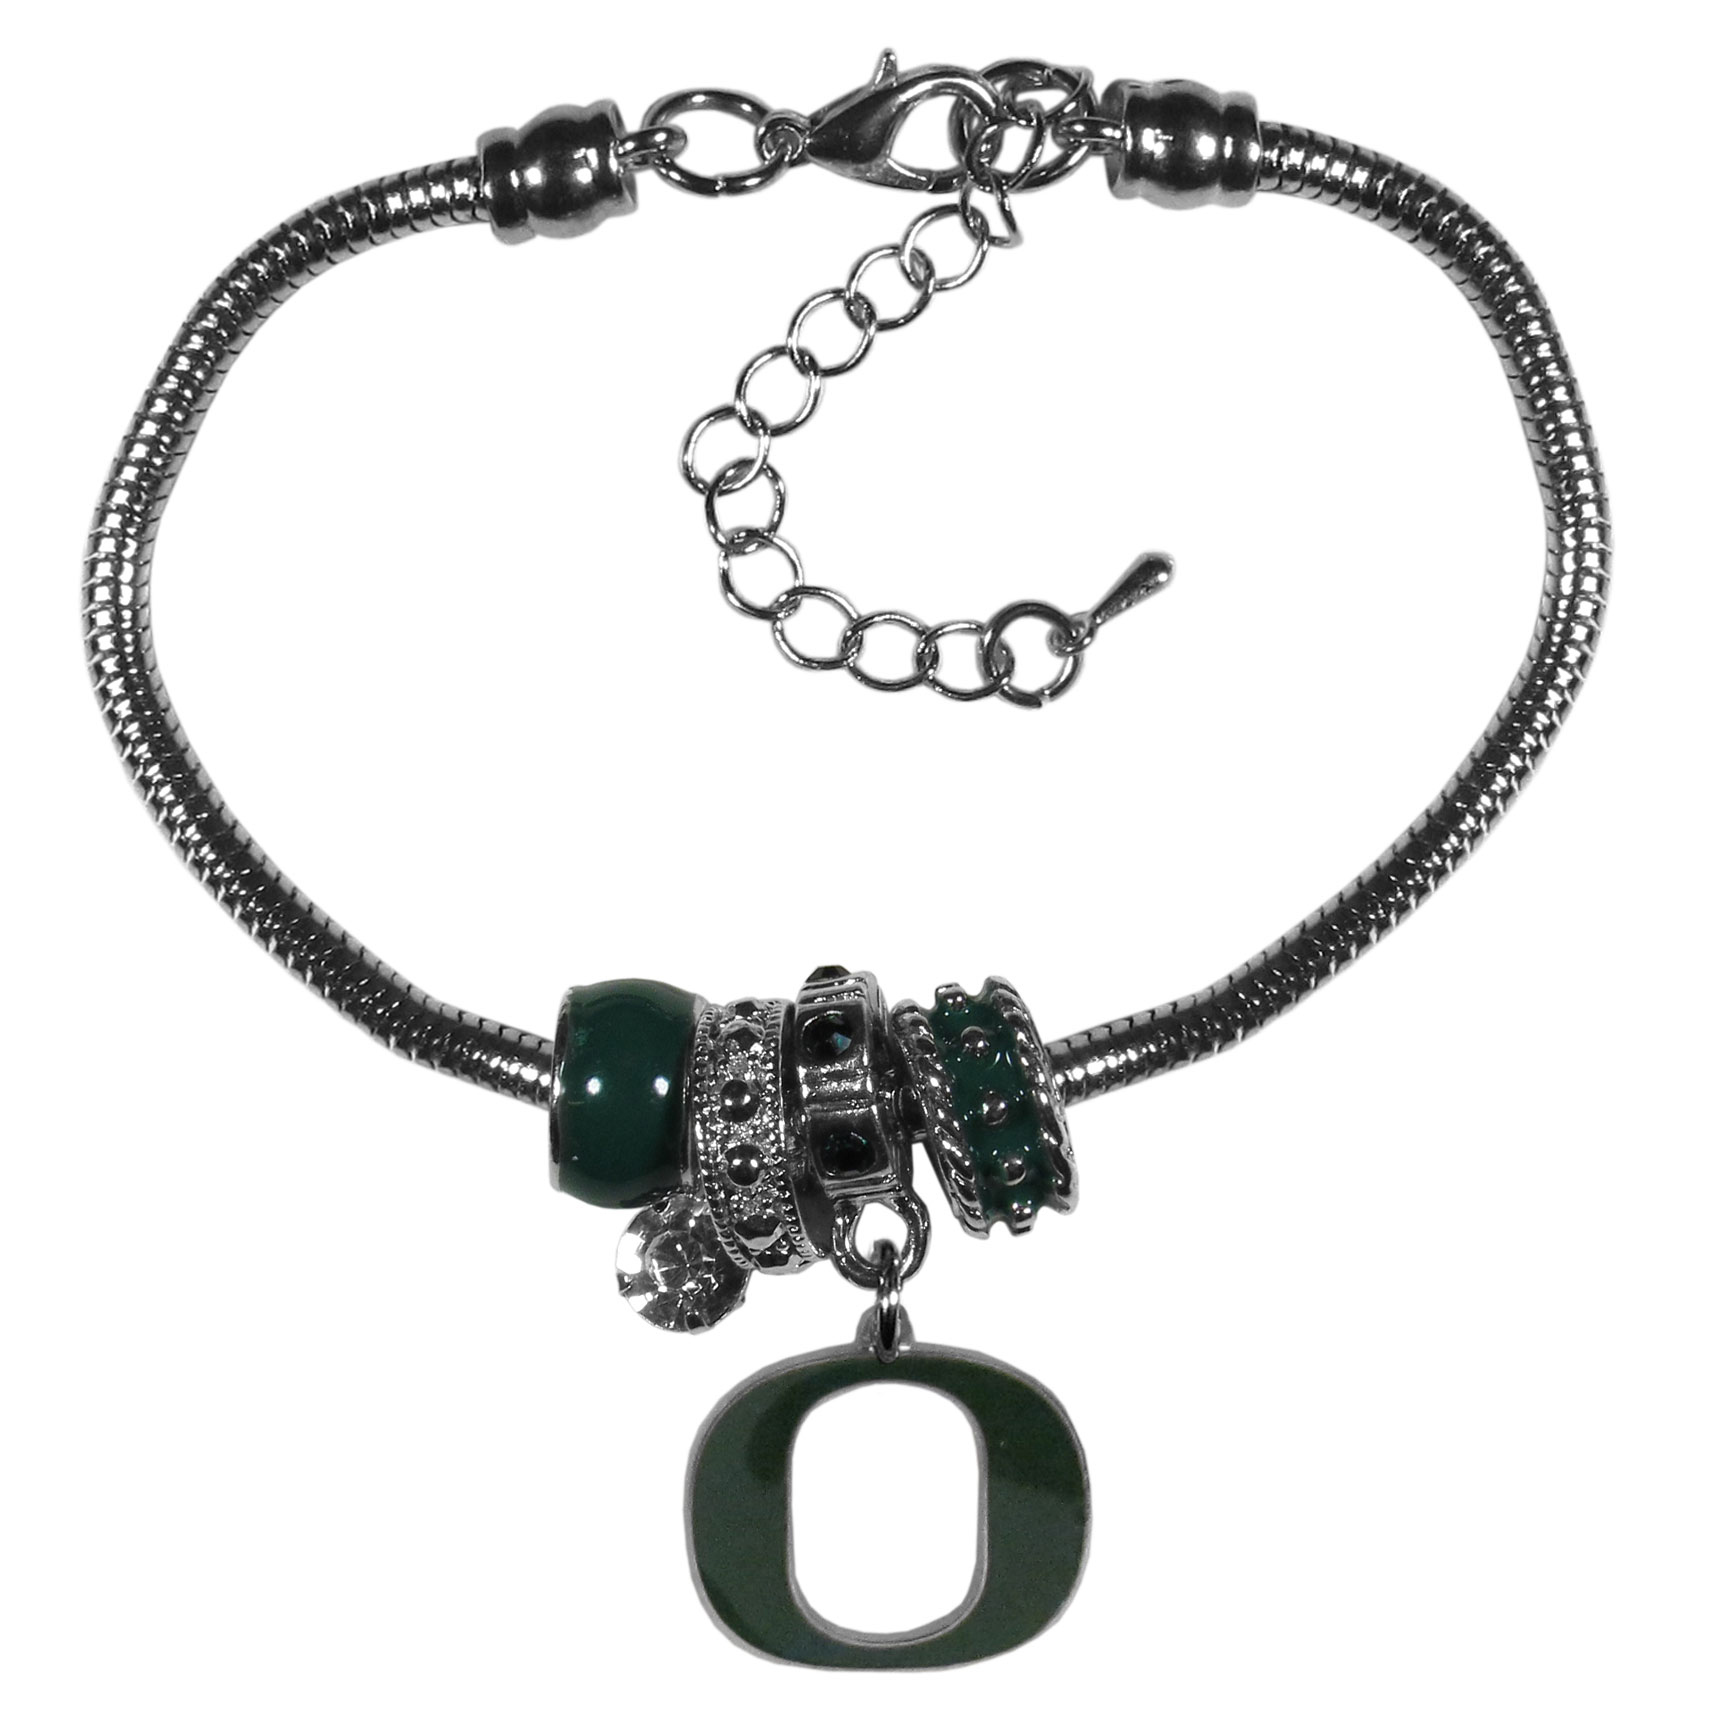 Oregon Ducks Euro Bead Bracelet - We have combined the wildly popular Euro style beads with your favorite team to create our  Oregon Ducks bead bracelet. The 7.5 inch snake chain with 2 inch extender features 4 Euro beads with enameled team colors and rhinestone accents with a high polish, nickel free charm and rhinestone charm. Perfect way to show off your team pride.